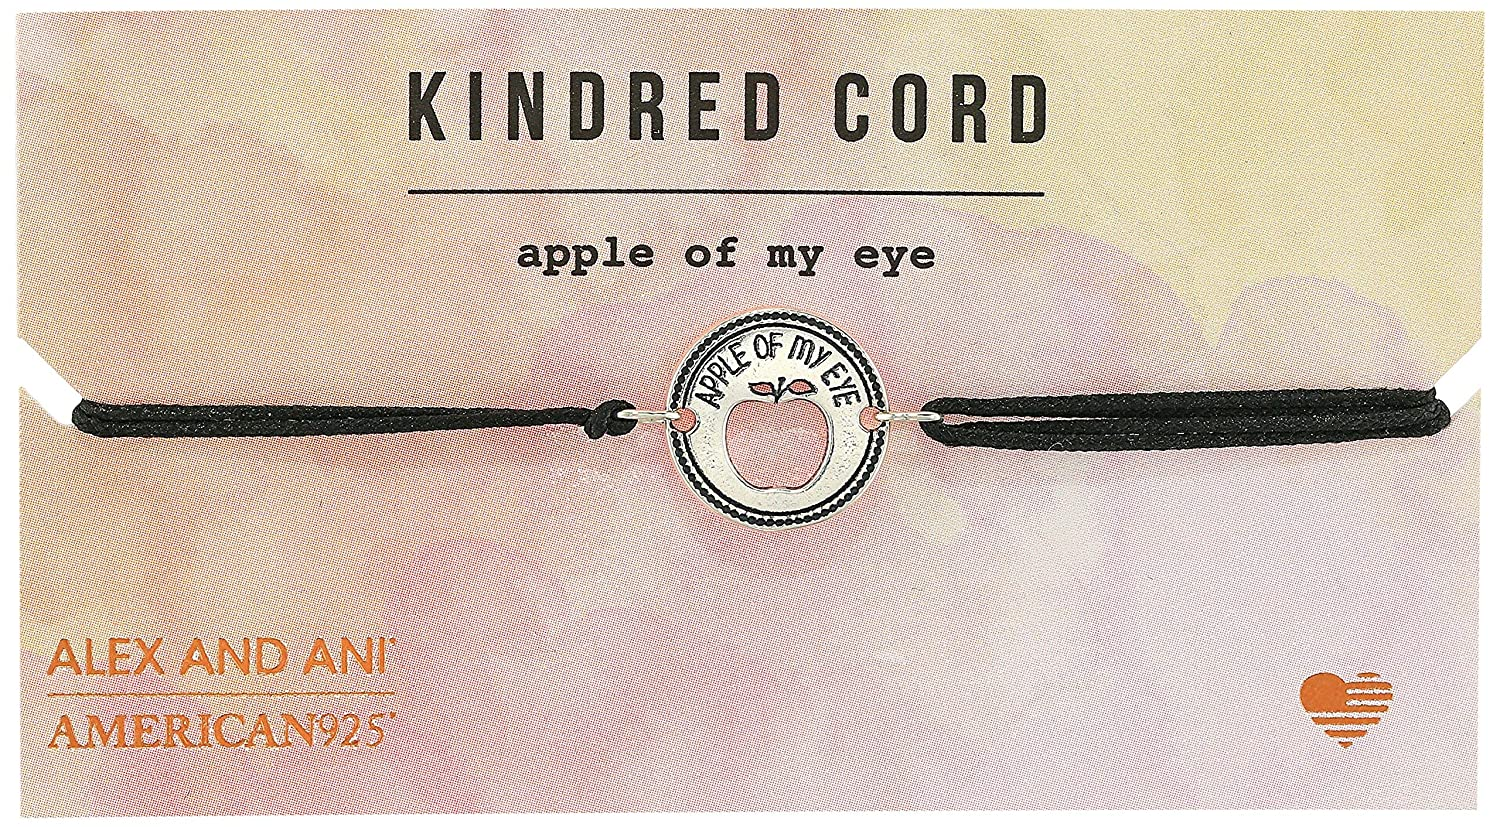 Amazon.com: Alex and Ani Kindred Cord Apple of My Eye ...